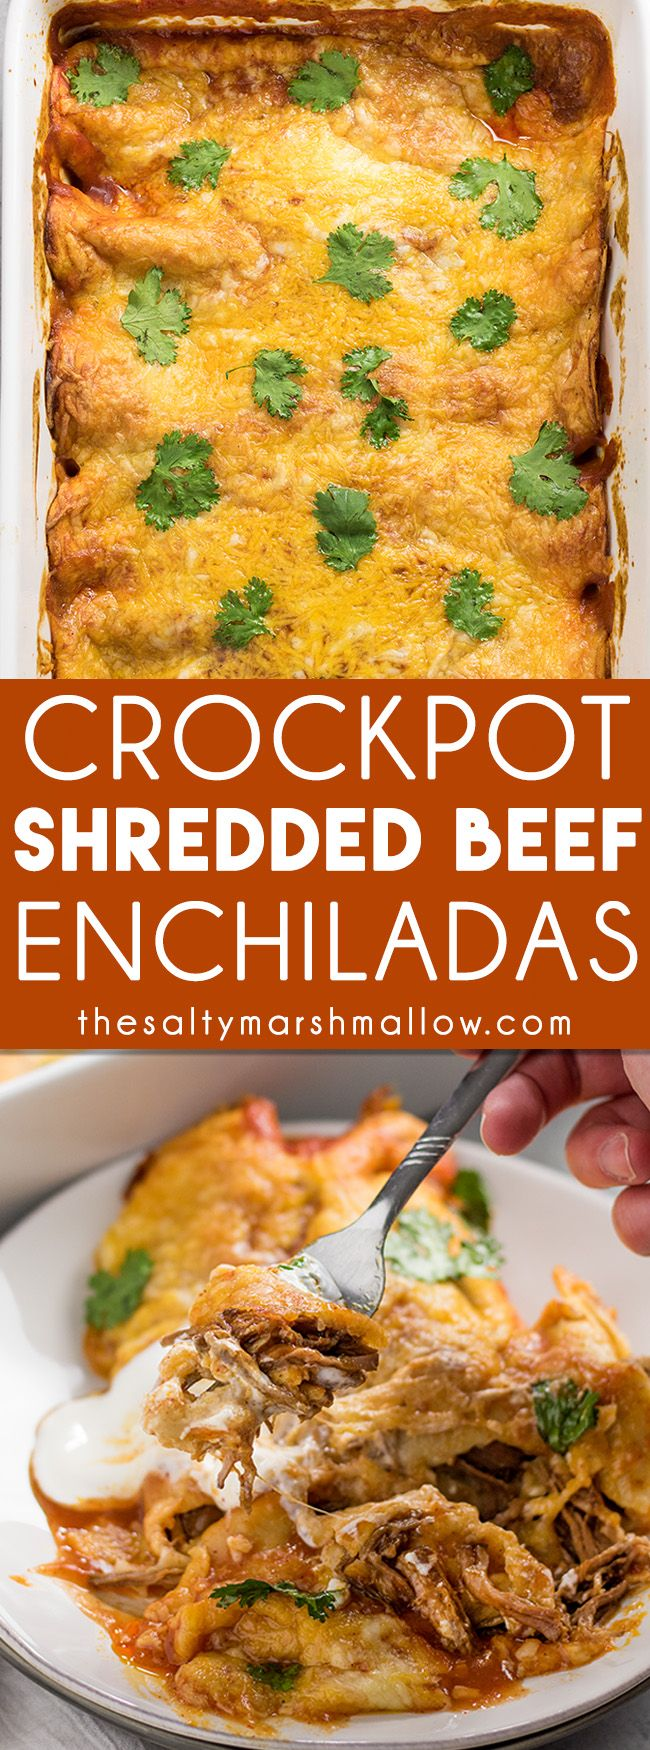 Shredded Beef Enchiladas: These shredded beef enchiladas are an easy to make slow cooker enchilada recipe! Tender Mexican shredded beef slow cooked in the crockpot to perfection, rolled inside of fl